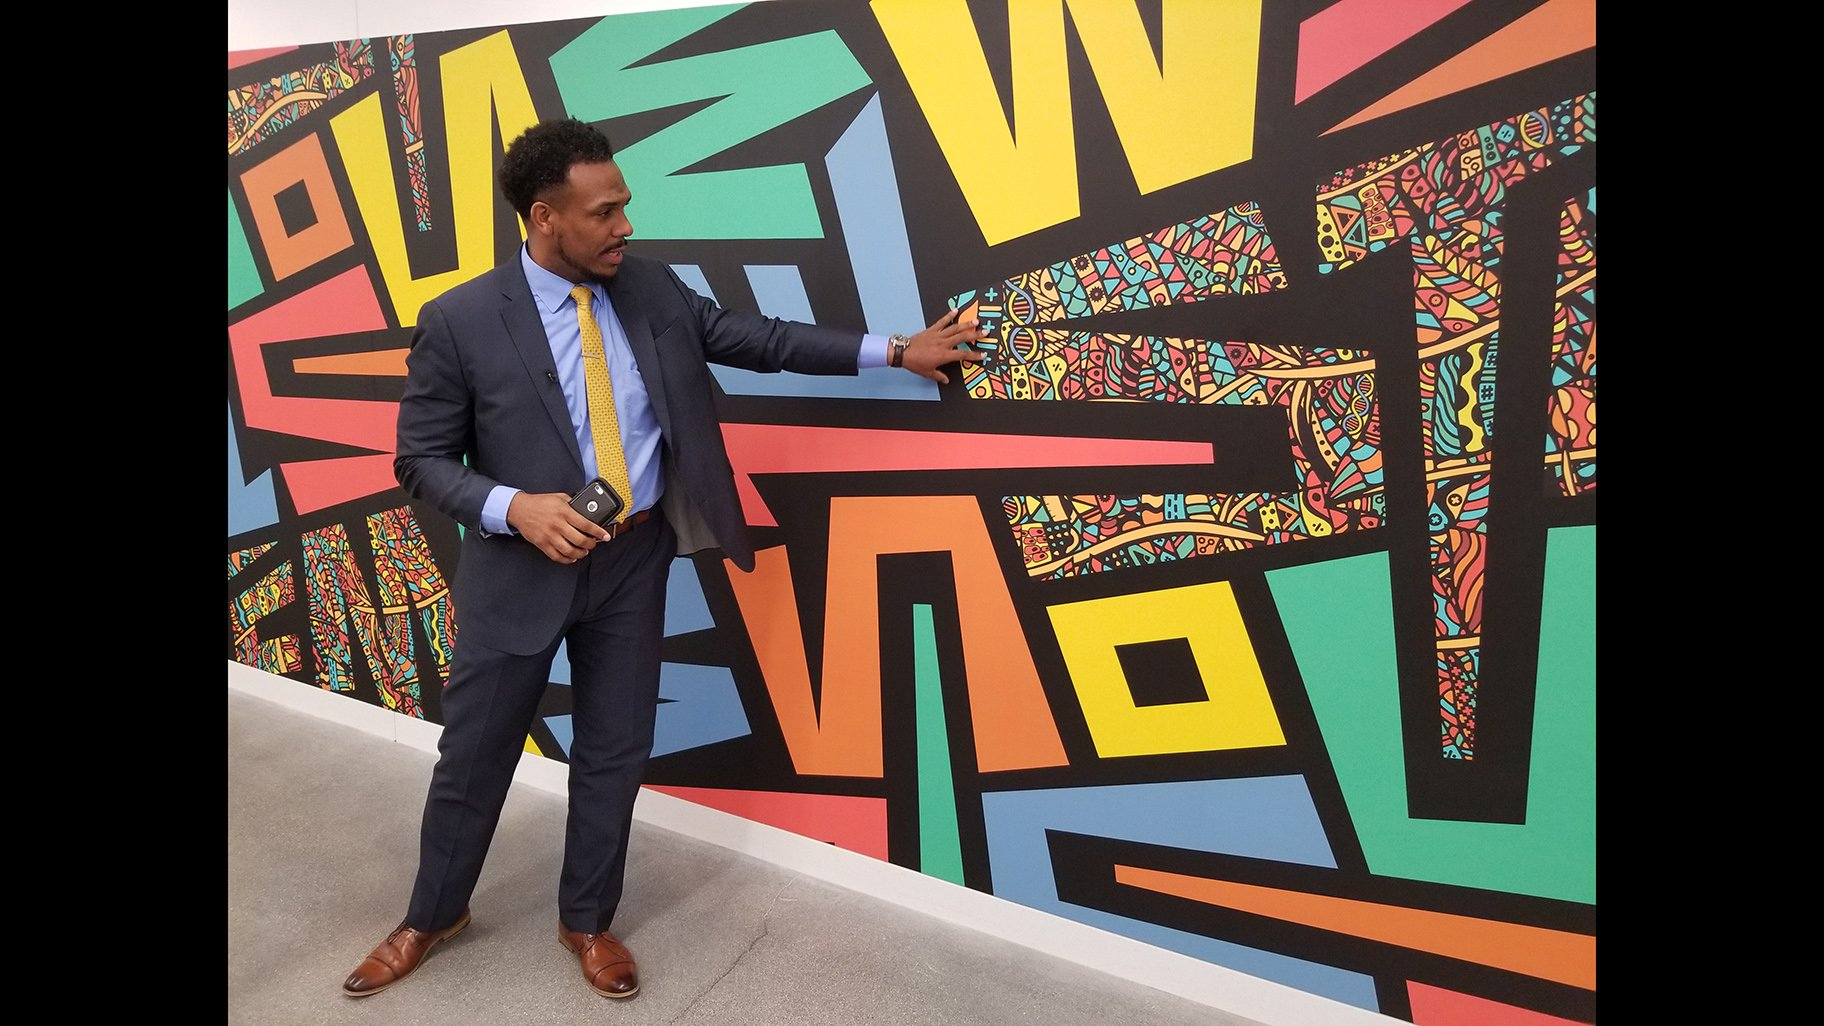 Englewood STEM Principal Conrad Timbers-Ausar shows off one of the murals inside his school's building. (Matt Masterson / WTTW News)